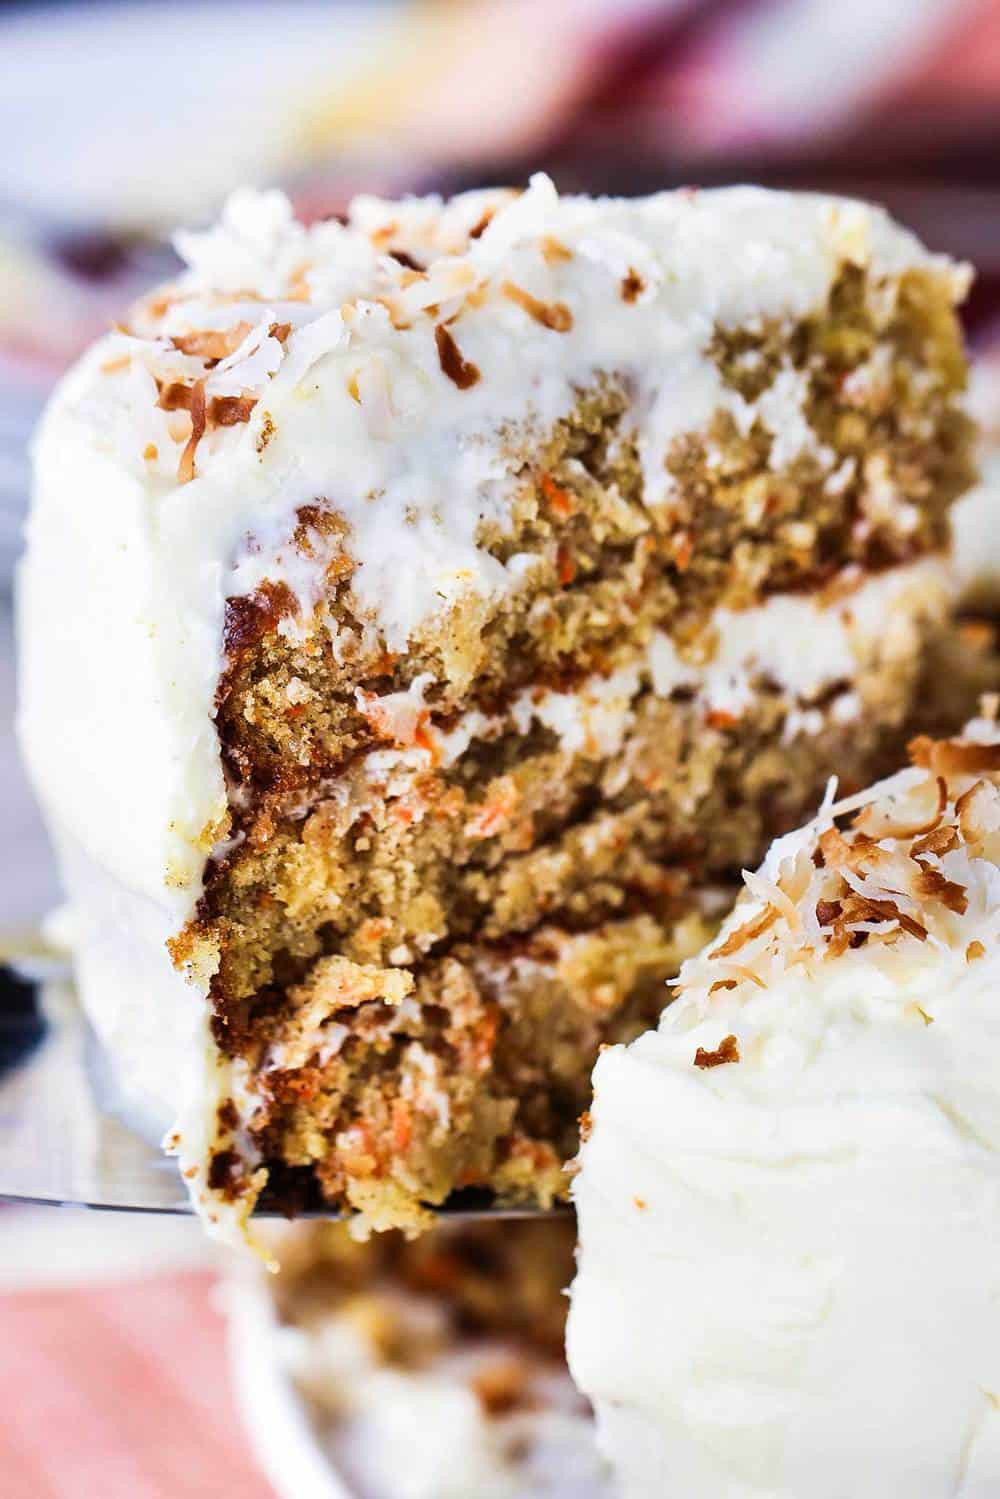 What Kind Of Nuts Go In A Carrot Cake